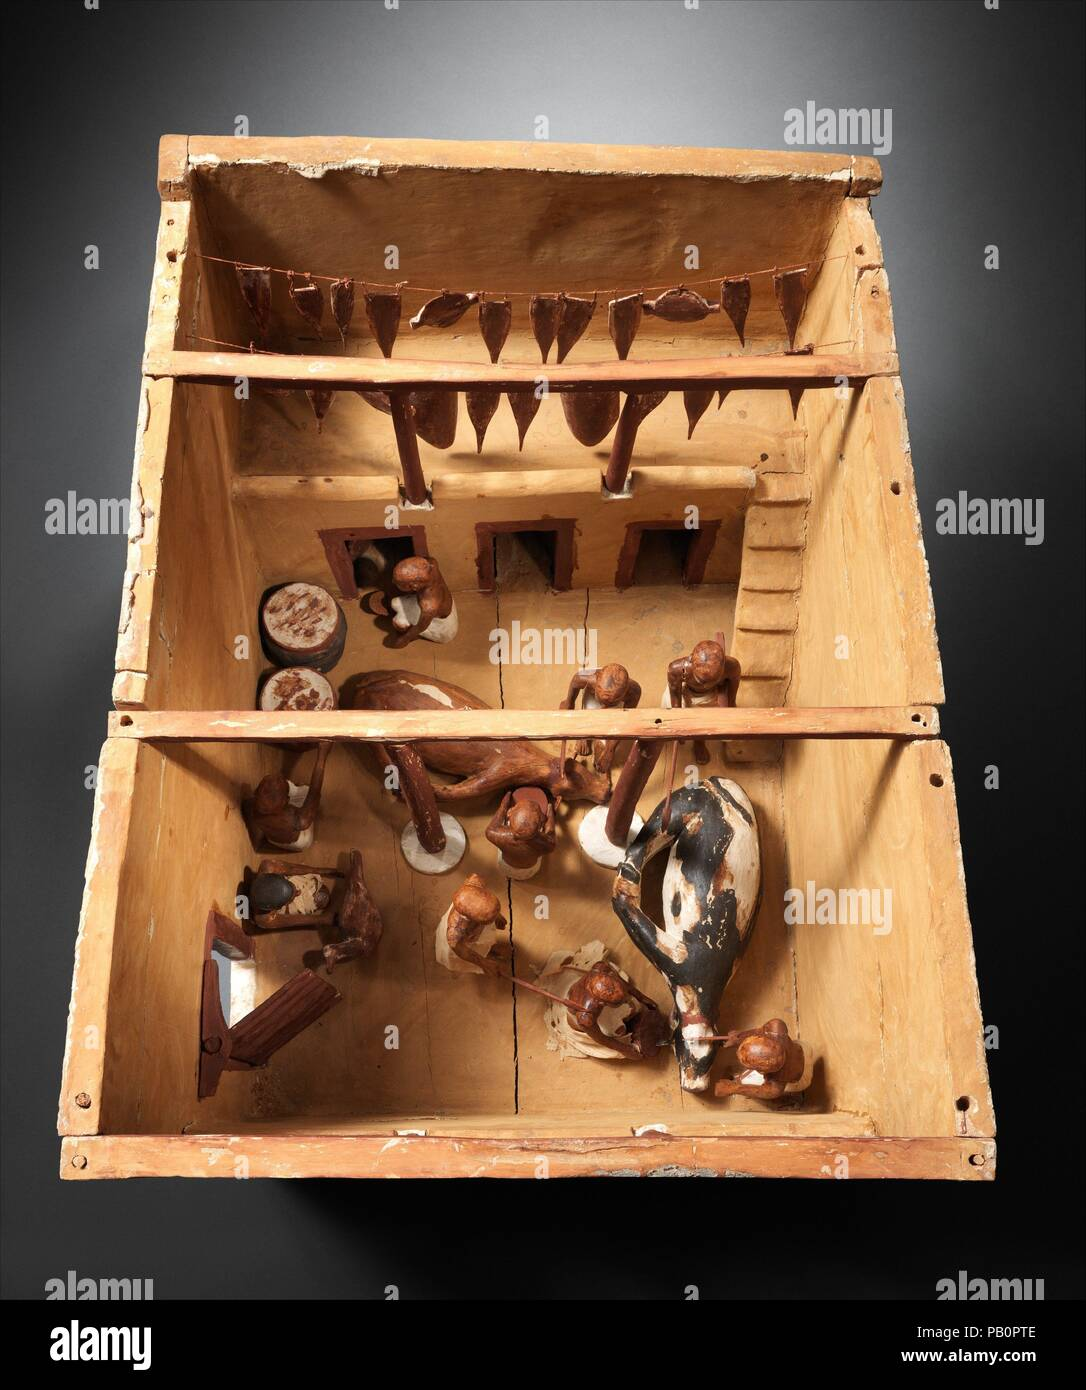 Model of a Slaughter House. Dimensions: L. 76.8 cm (30 1/4 in.); W. 58.5 cm (23 1/16 in.); greatest H. 58.5 cm (23 1/16 in.). Dynasty: Dynasty 12. Reign: early reign of Amenemhat I. Date: ca. 1981-1975 B.C..  This model of a meat processing installation was found with twenty three other models of boats, gardens, and workshops in a hidden chamber at the side of the passage leading into the rock cut tomb of the royal chief steward Meketre, who began his career under King Nebhepetre Mentuhotep II of Dynasty 11 and continued to serve successive kings into the early years of Dynasty 12.  Two oxen a Stock Photo